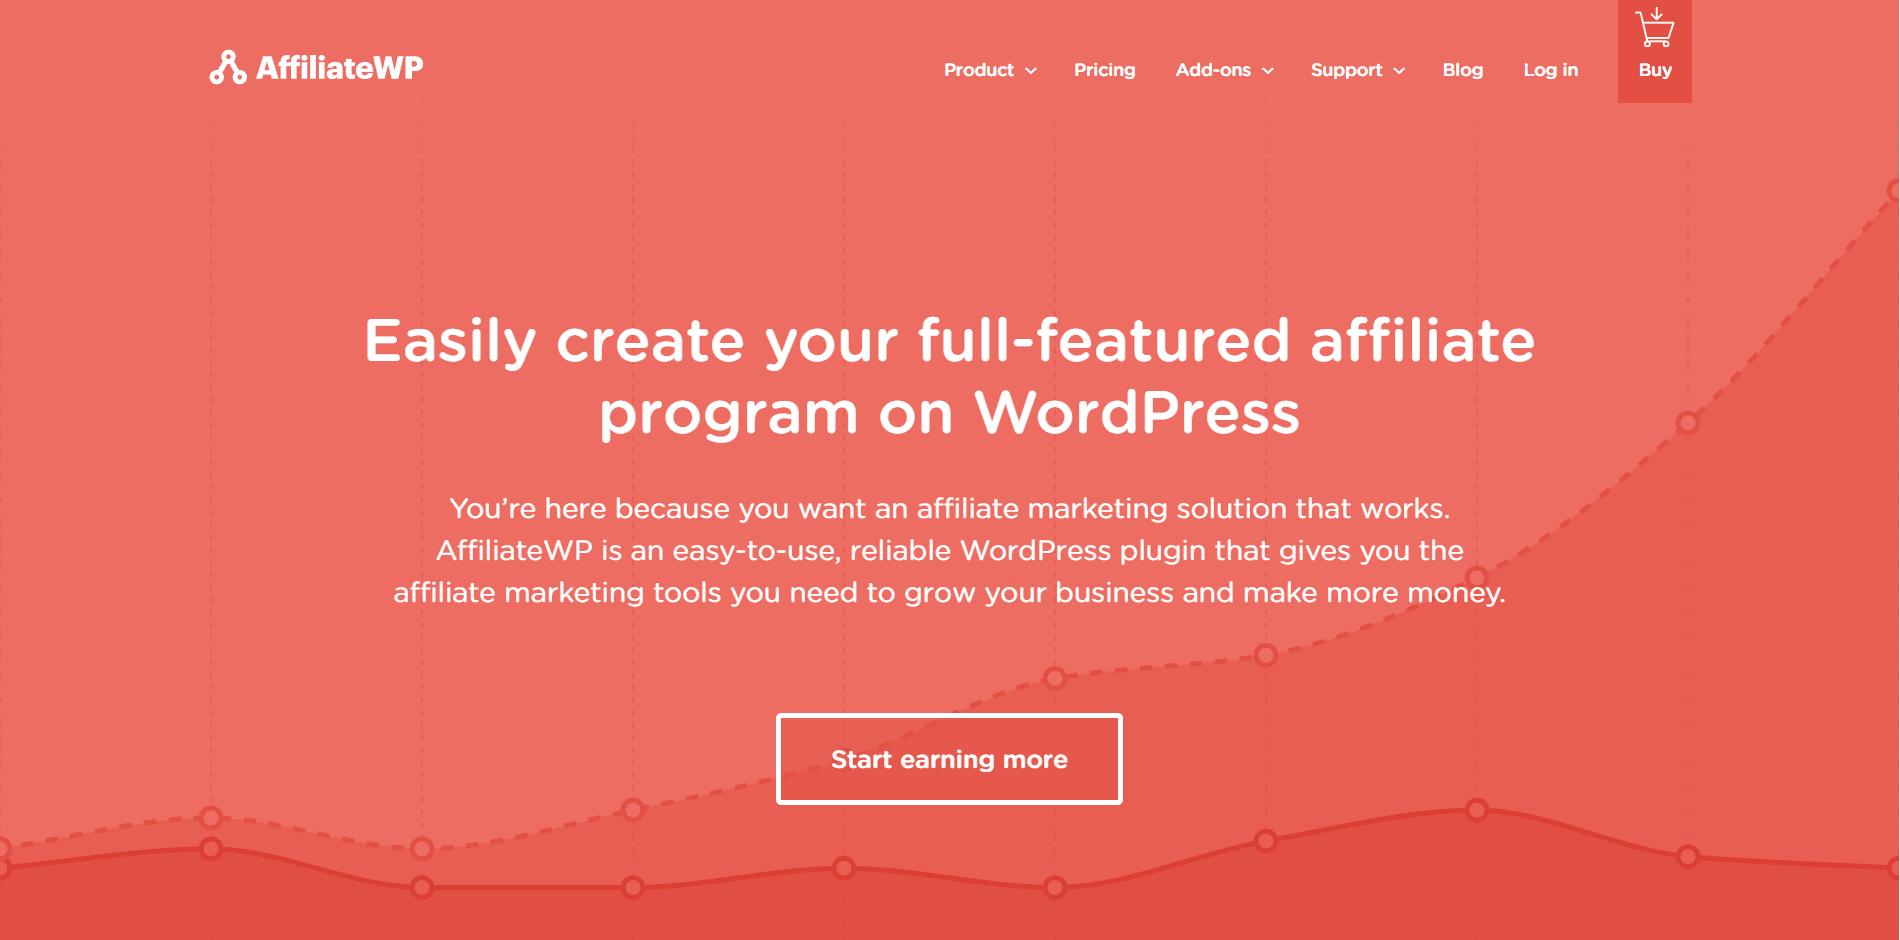 AffiliateWP-Overview